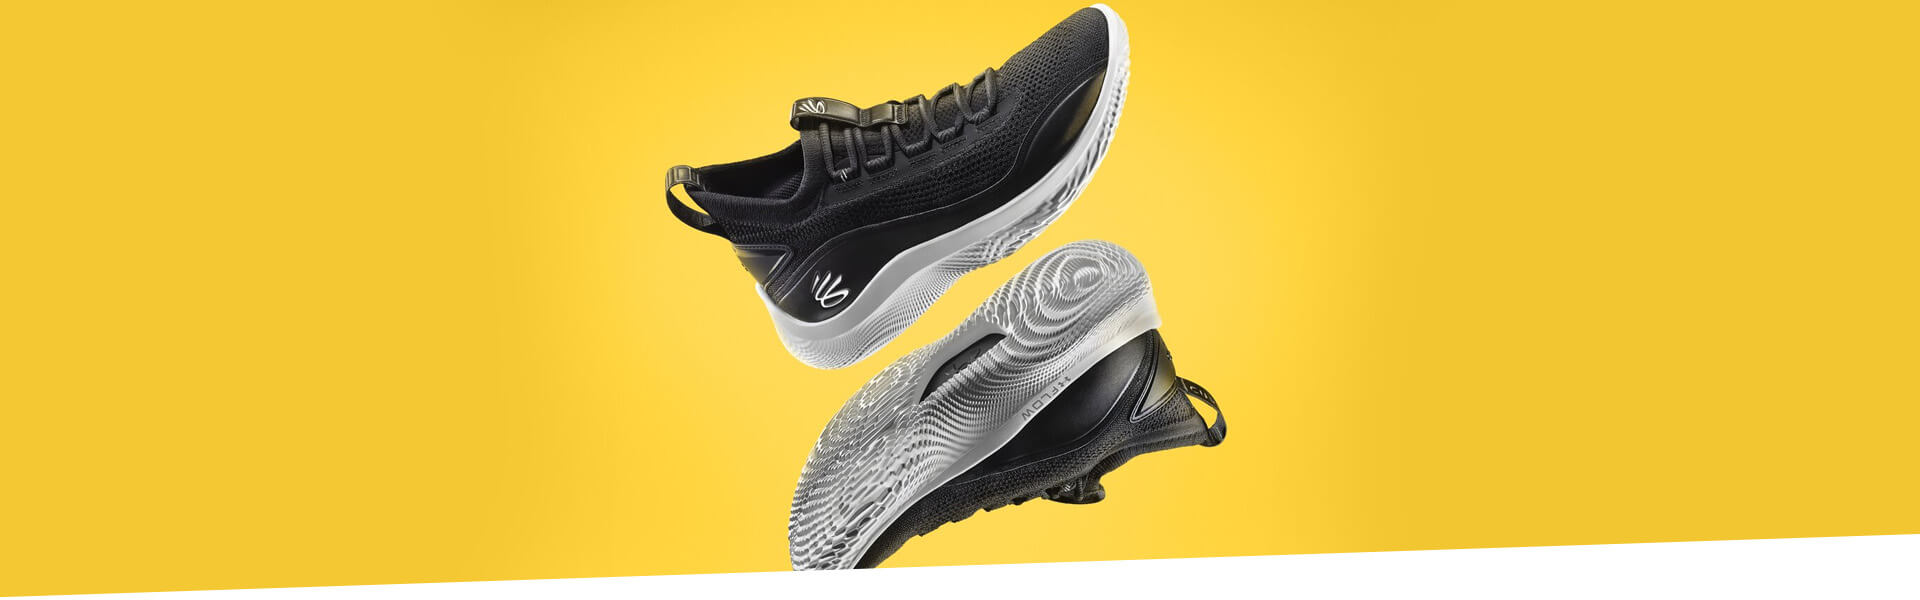 Under Armour Curry 8 banner 1 (1)